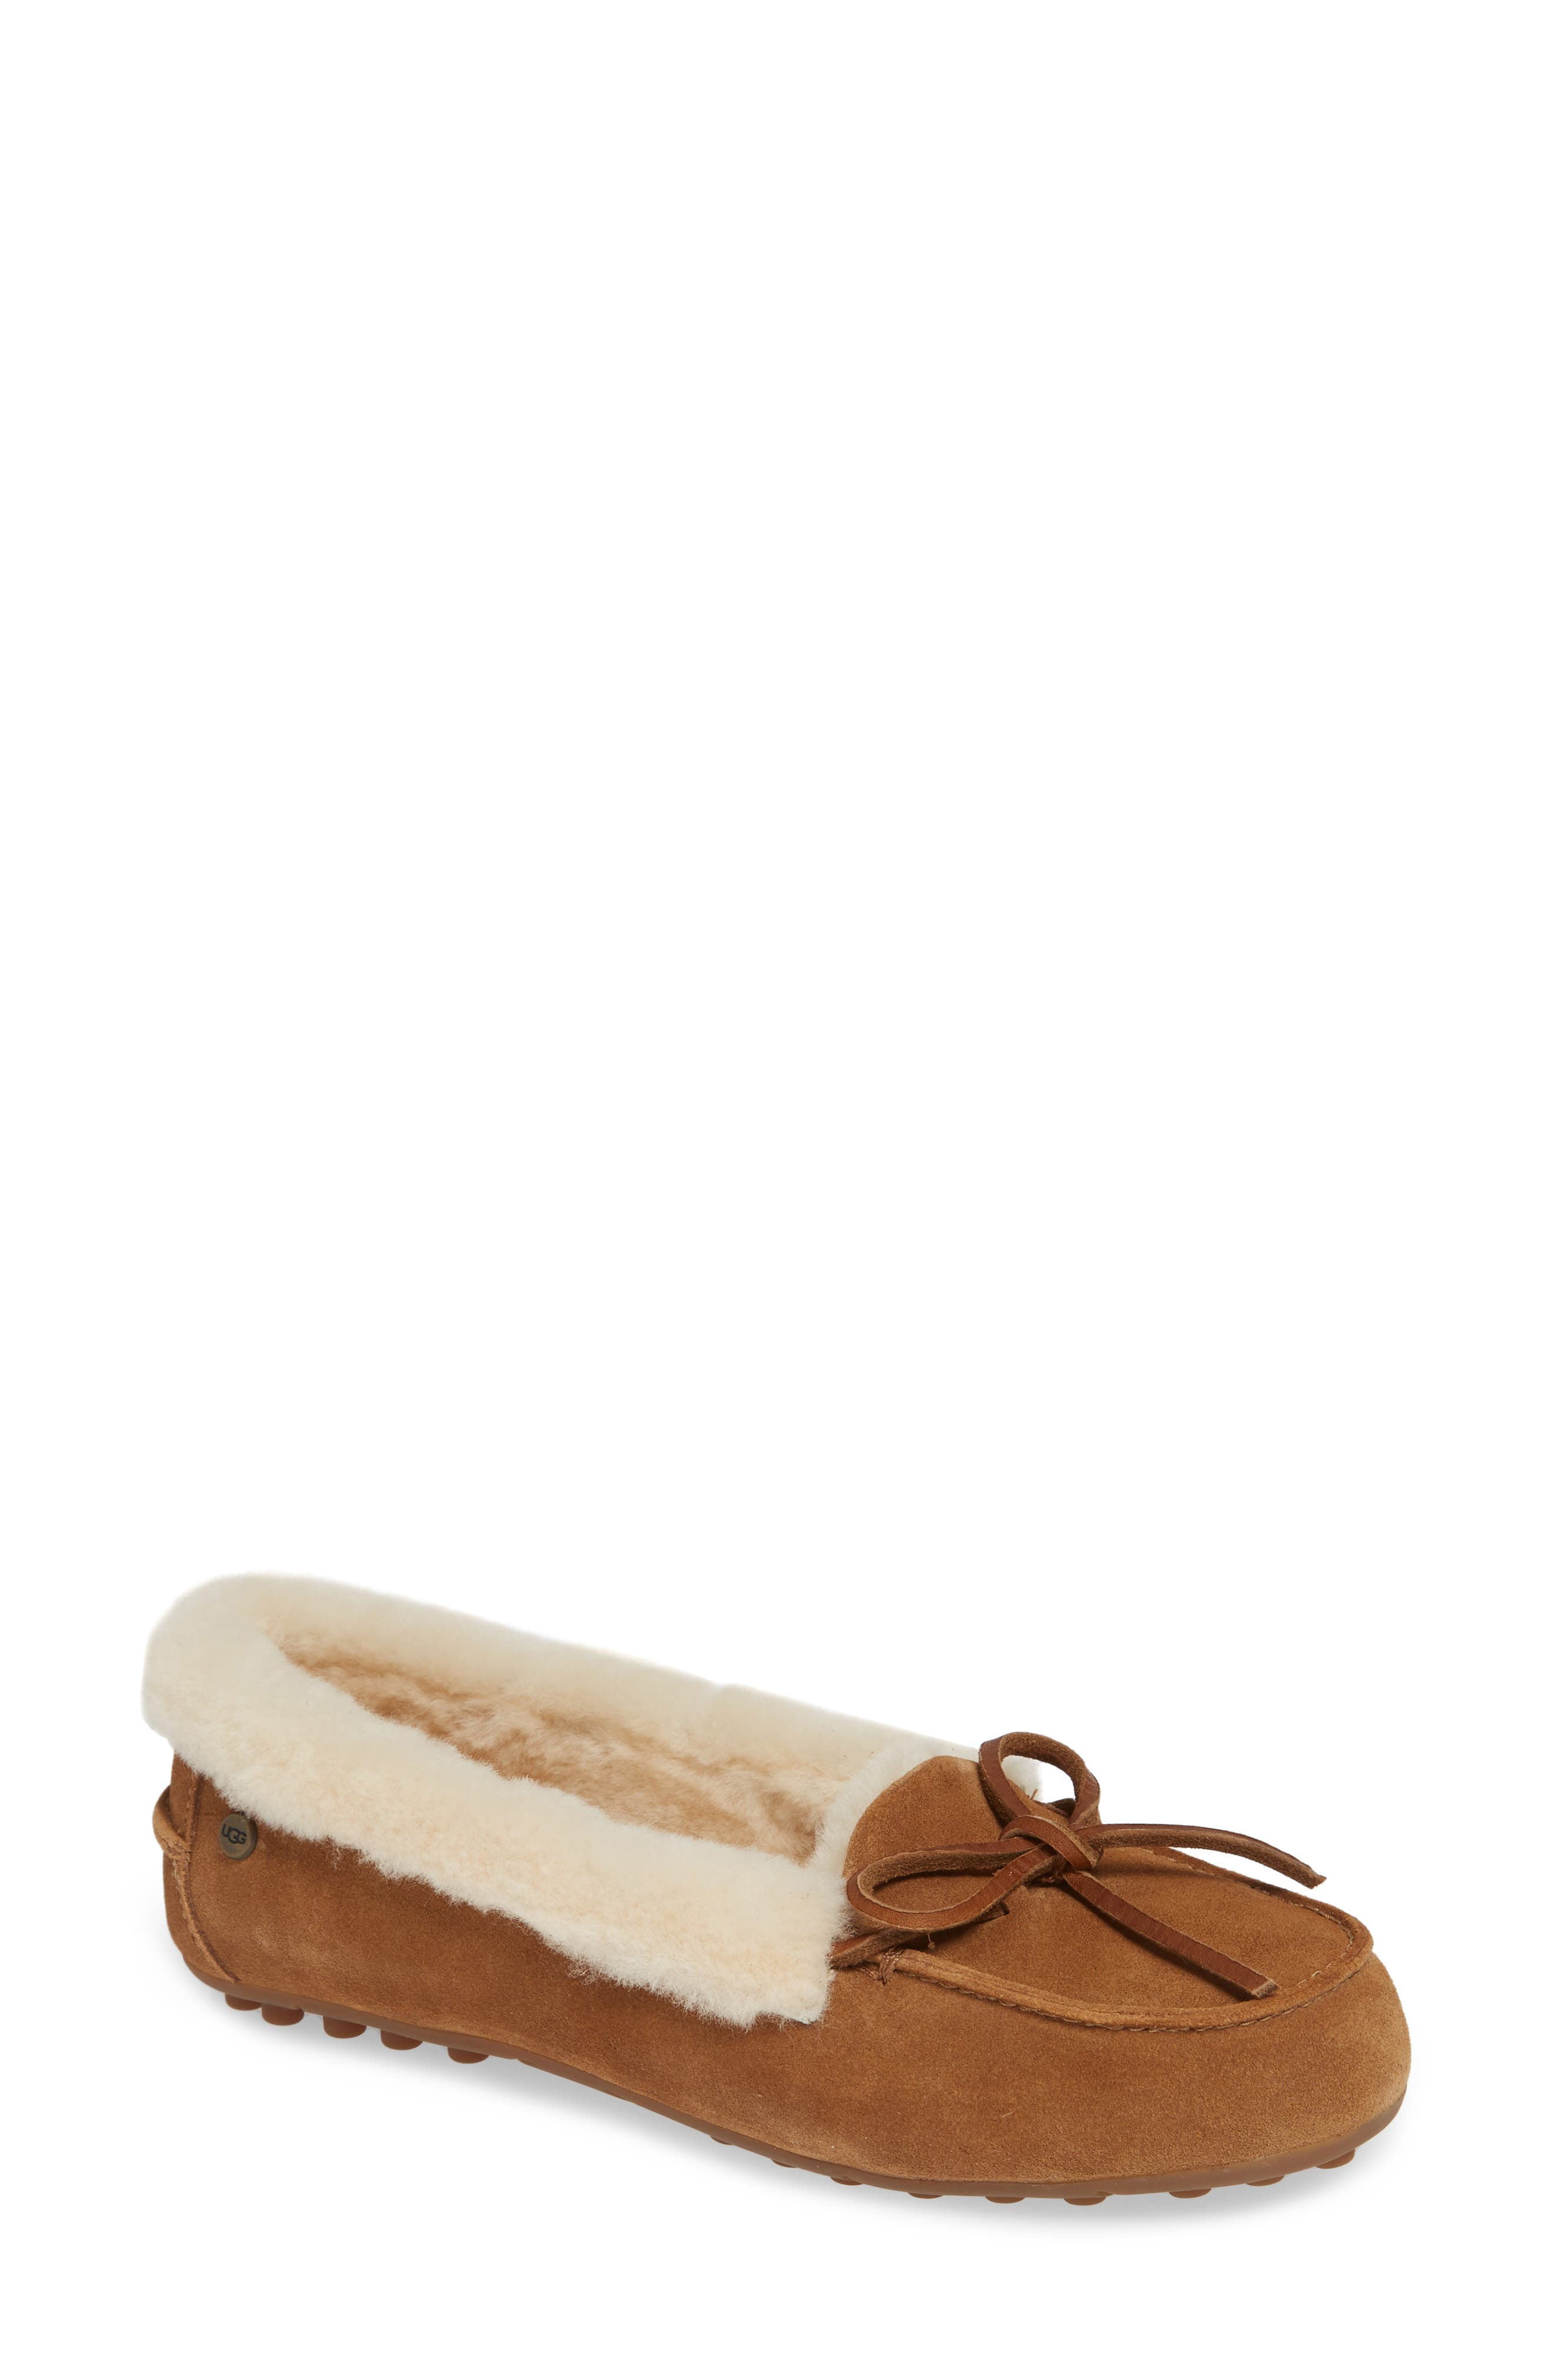 Ugg Solana Driving Slipper, Brown